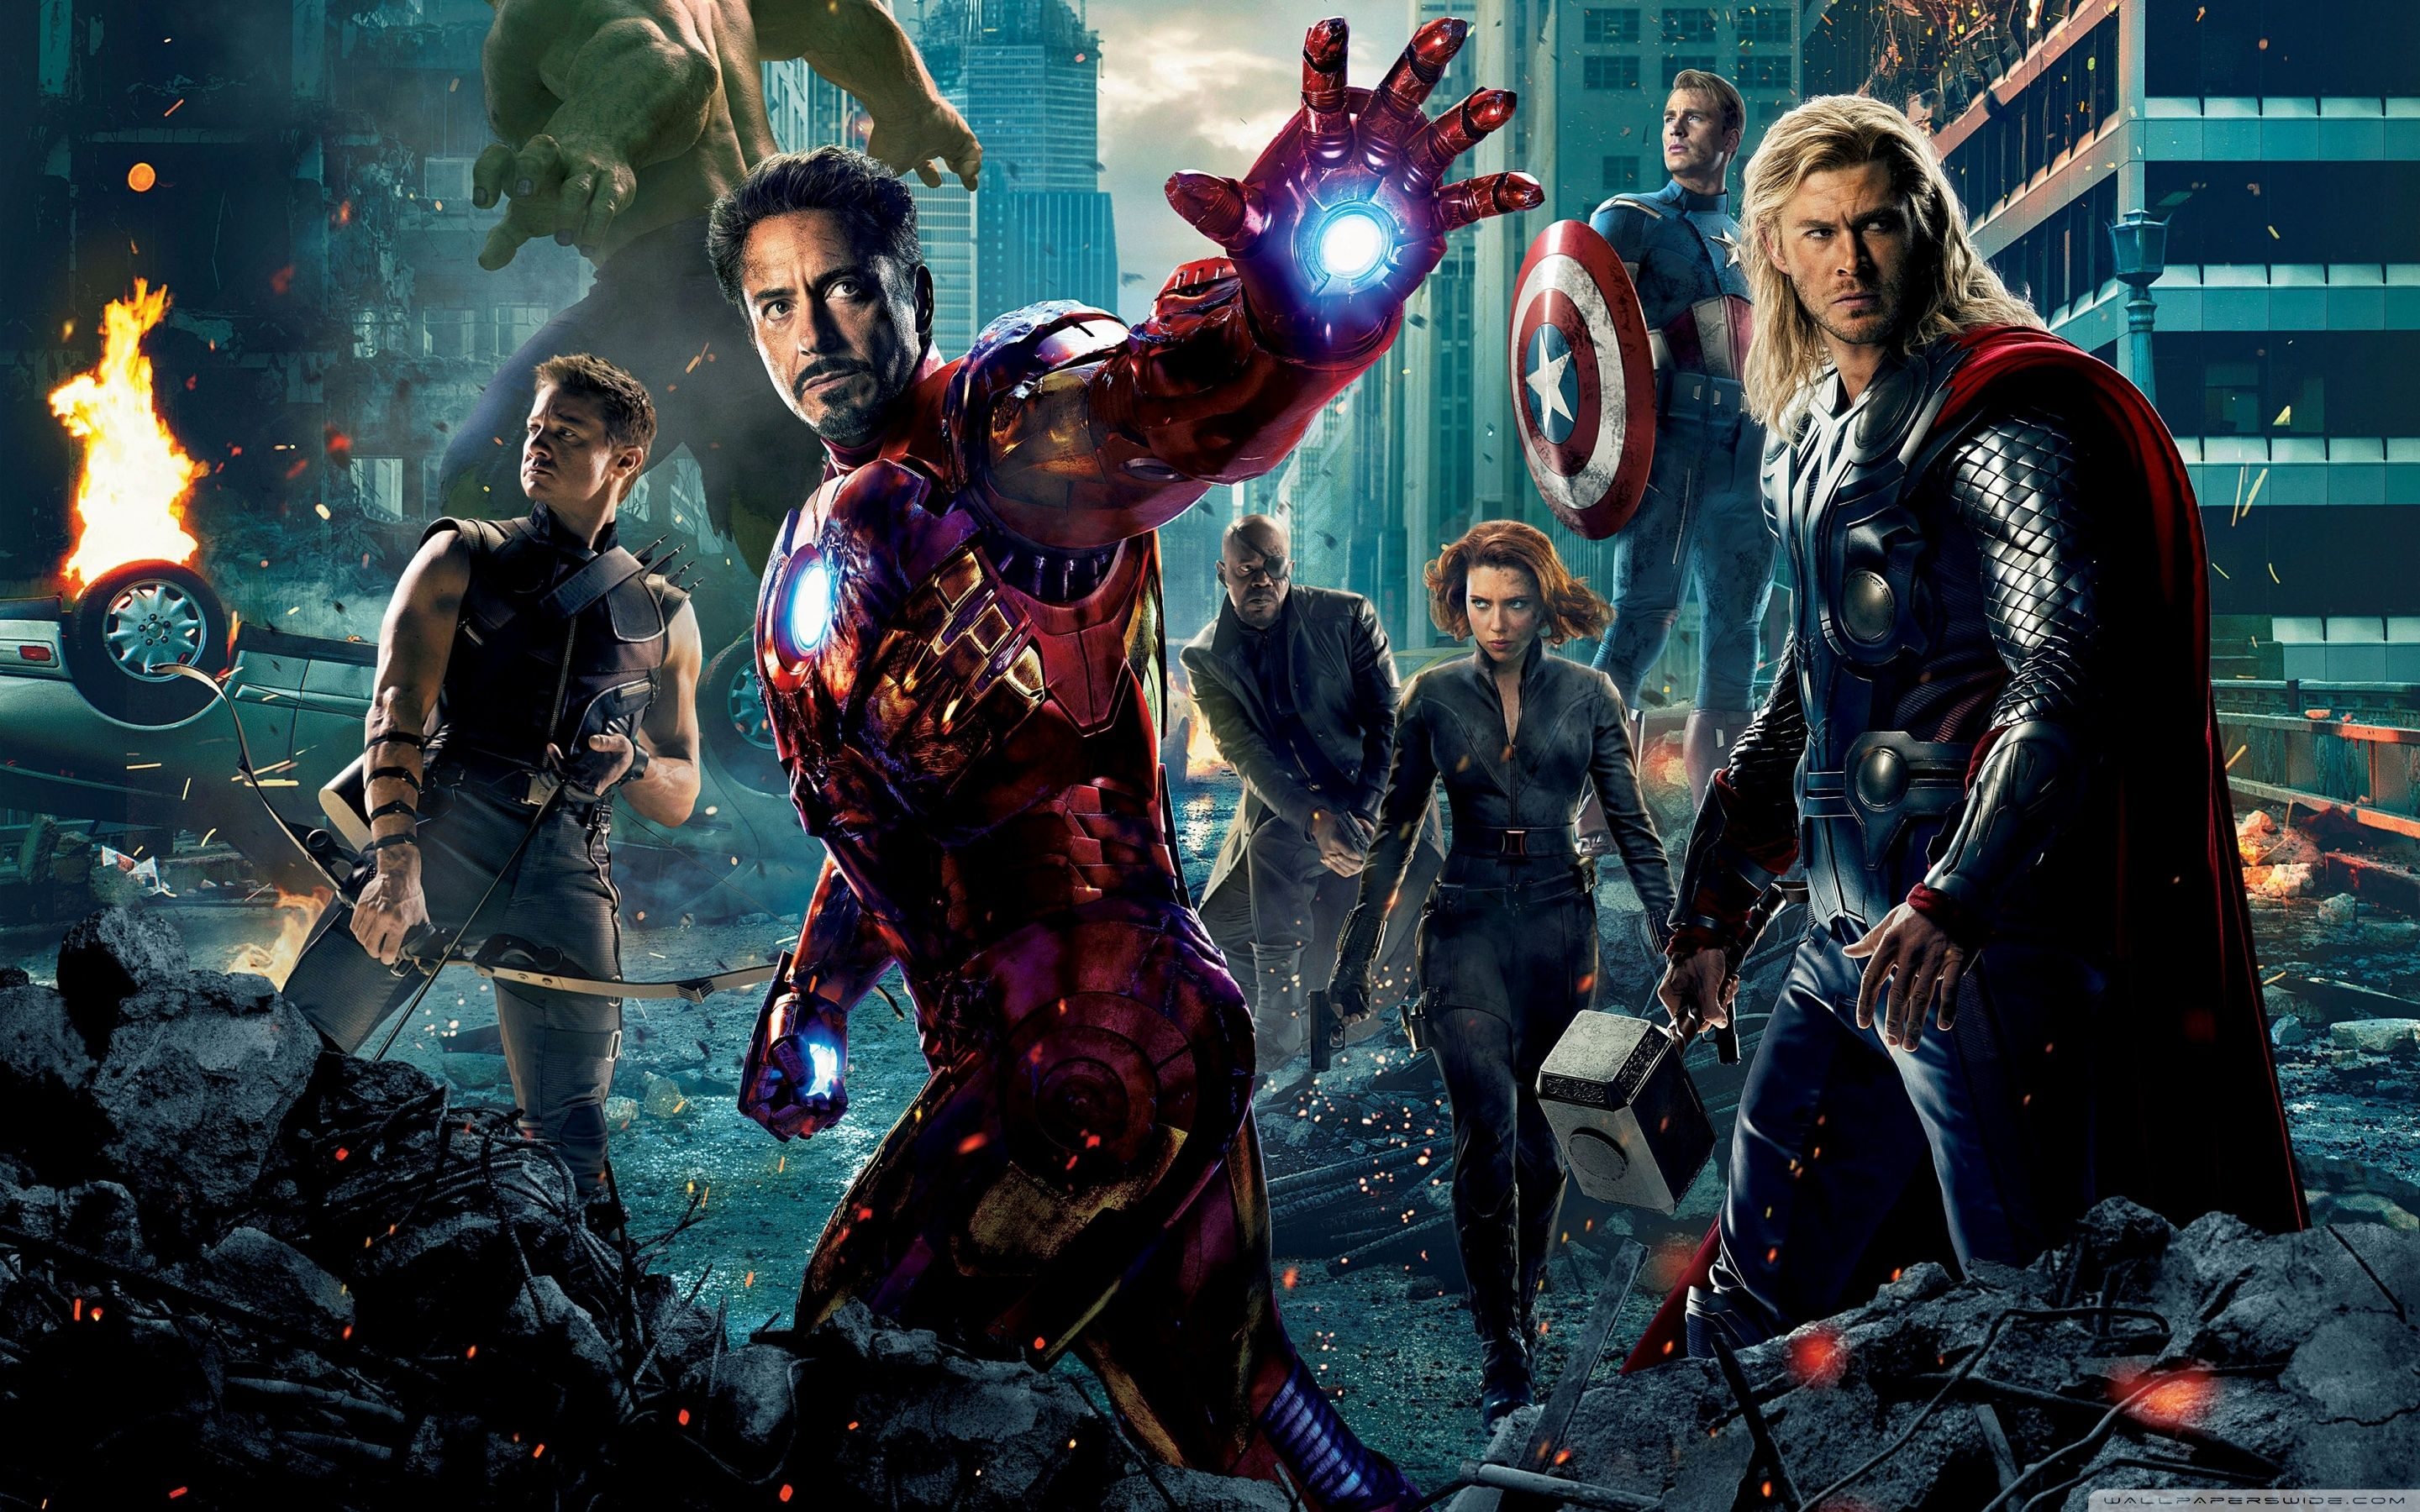 The Avengers 2012 Wallpapers - Top Free The Avengers 2012 ...2012 Movie Wallpaper